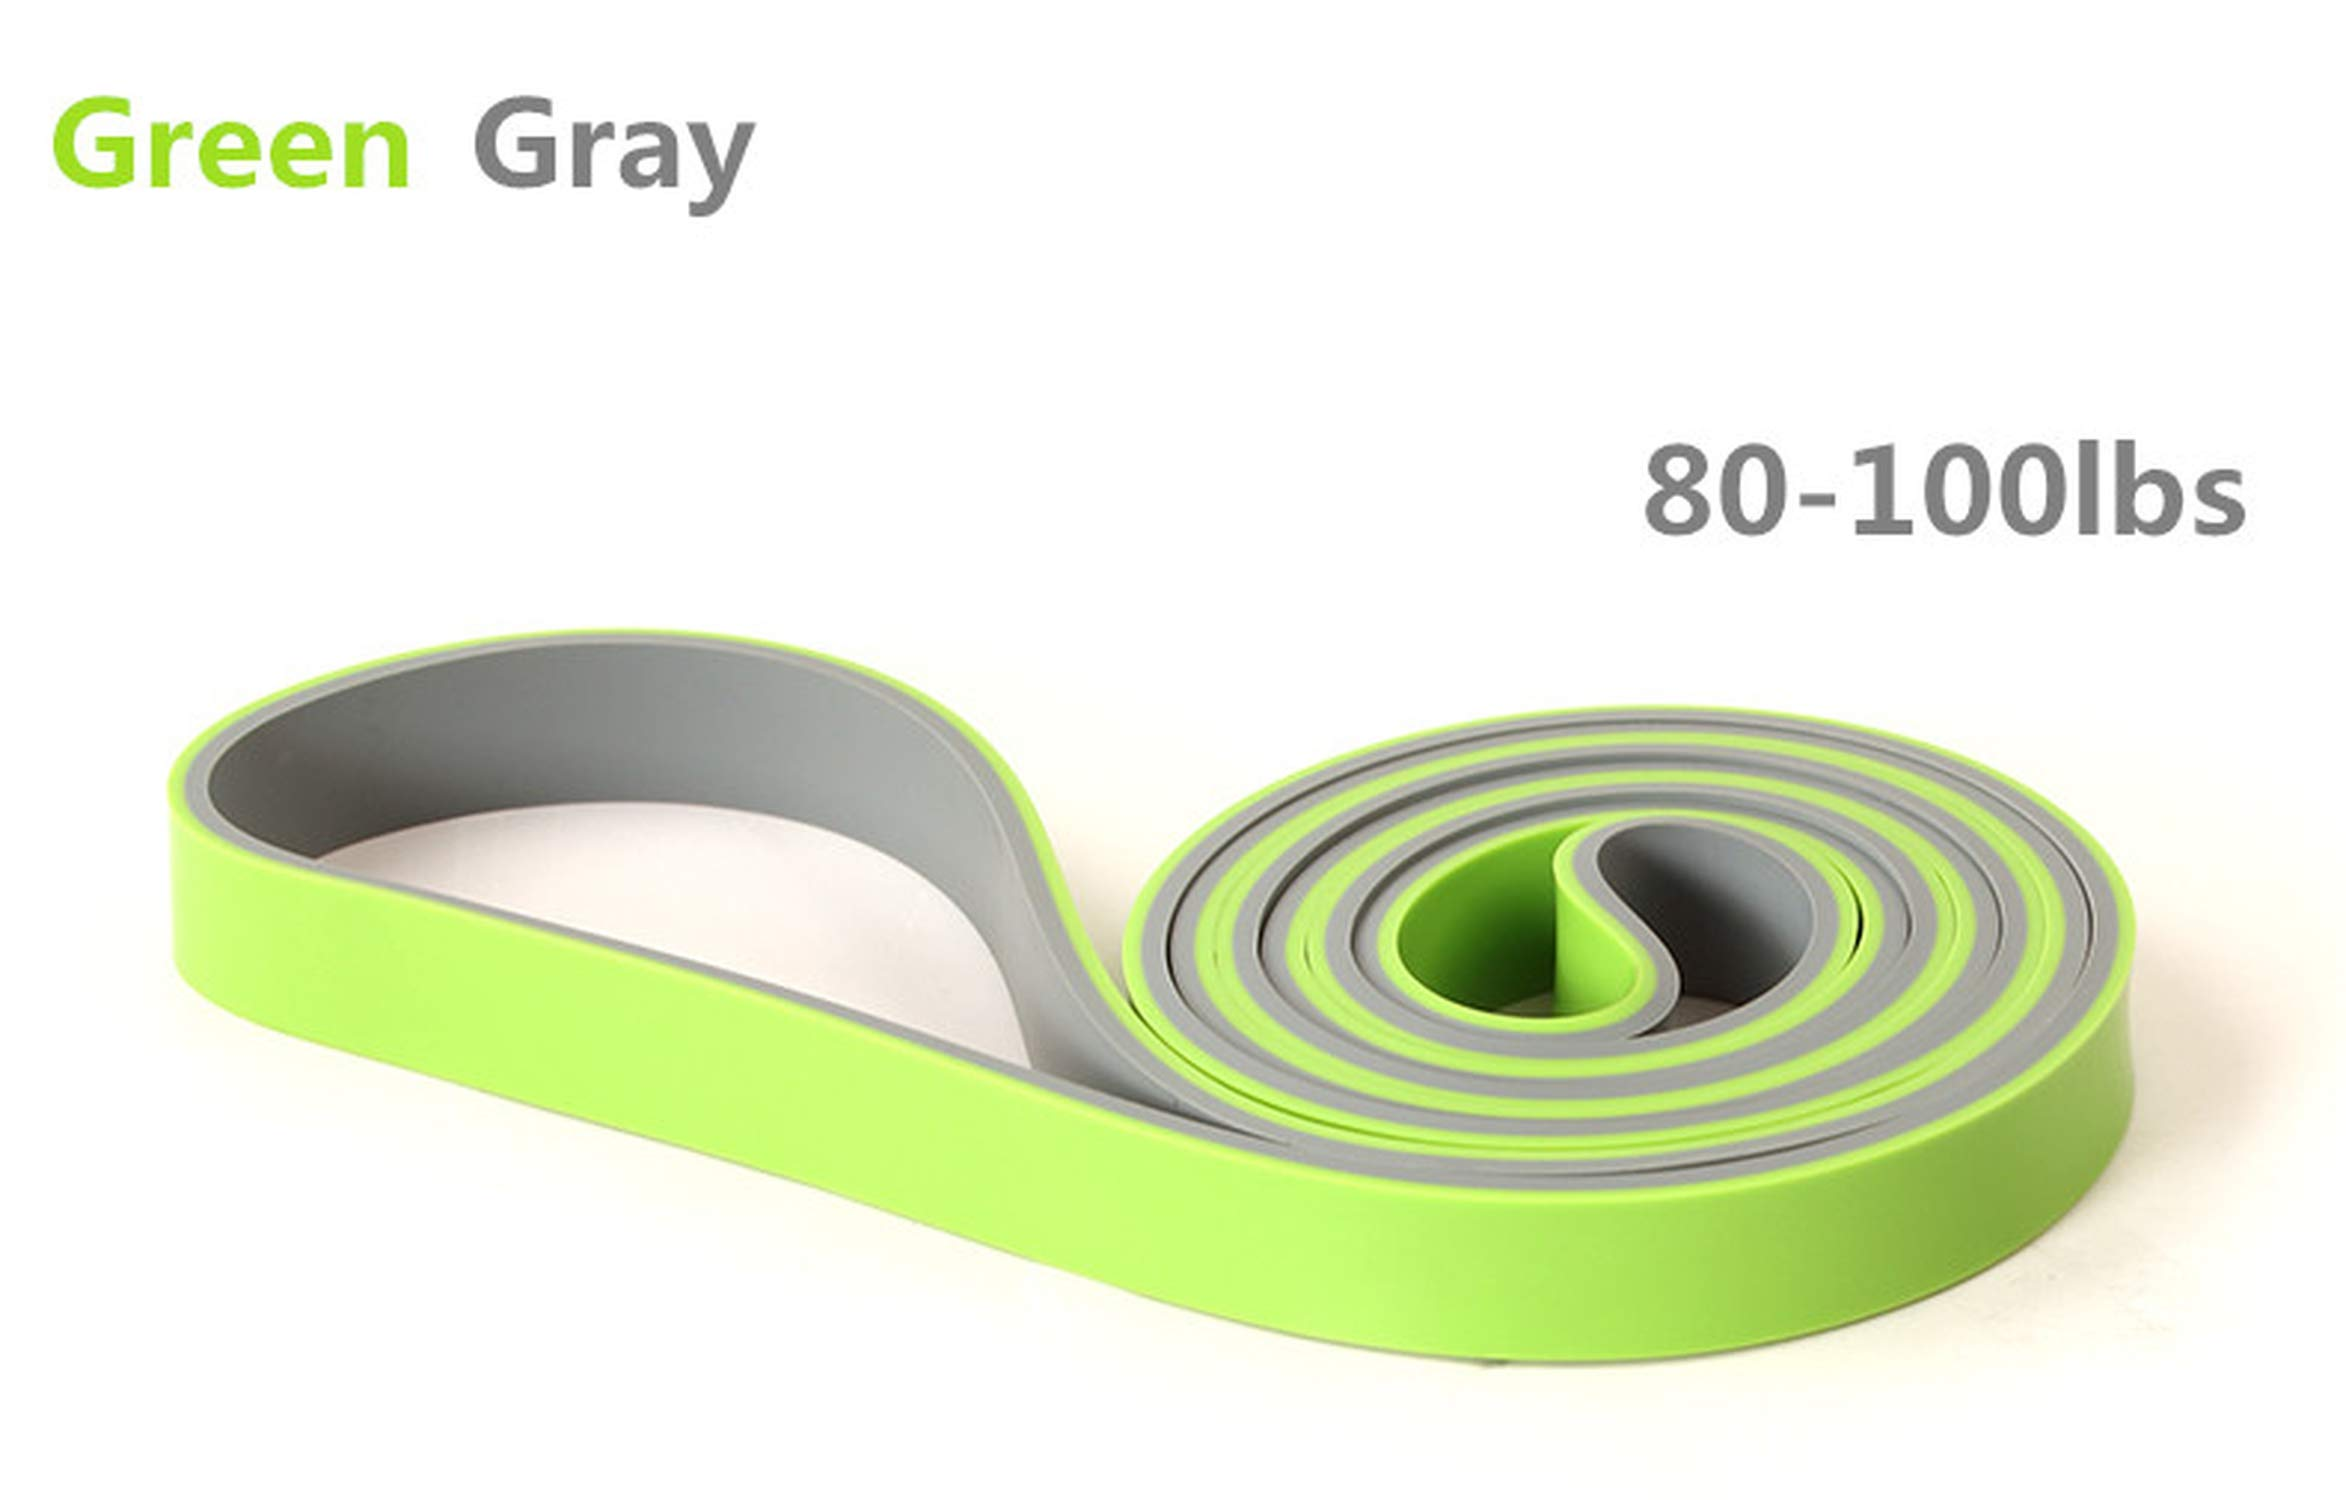 ERYIQI Pull Up Assist Bands - Heavy Duty Resistance Band, Mobility & Powerlifting Exercise Bands, Perfect for Body Stretching, Powerlifting, Resistance Training, Single Band & Set